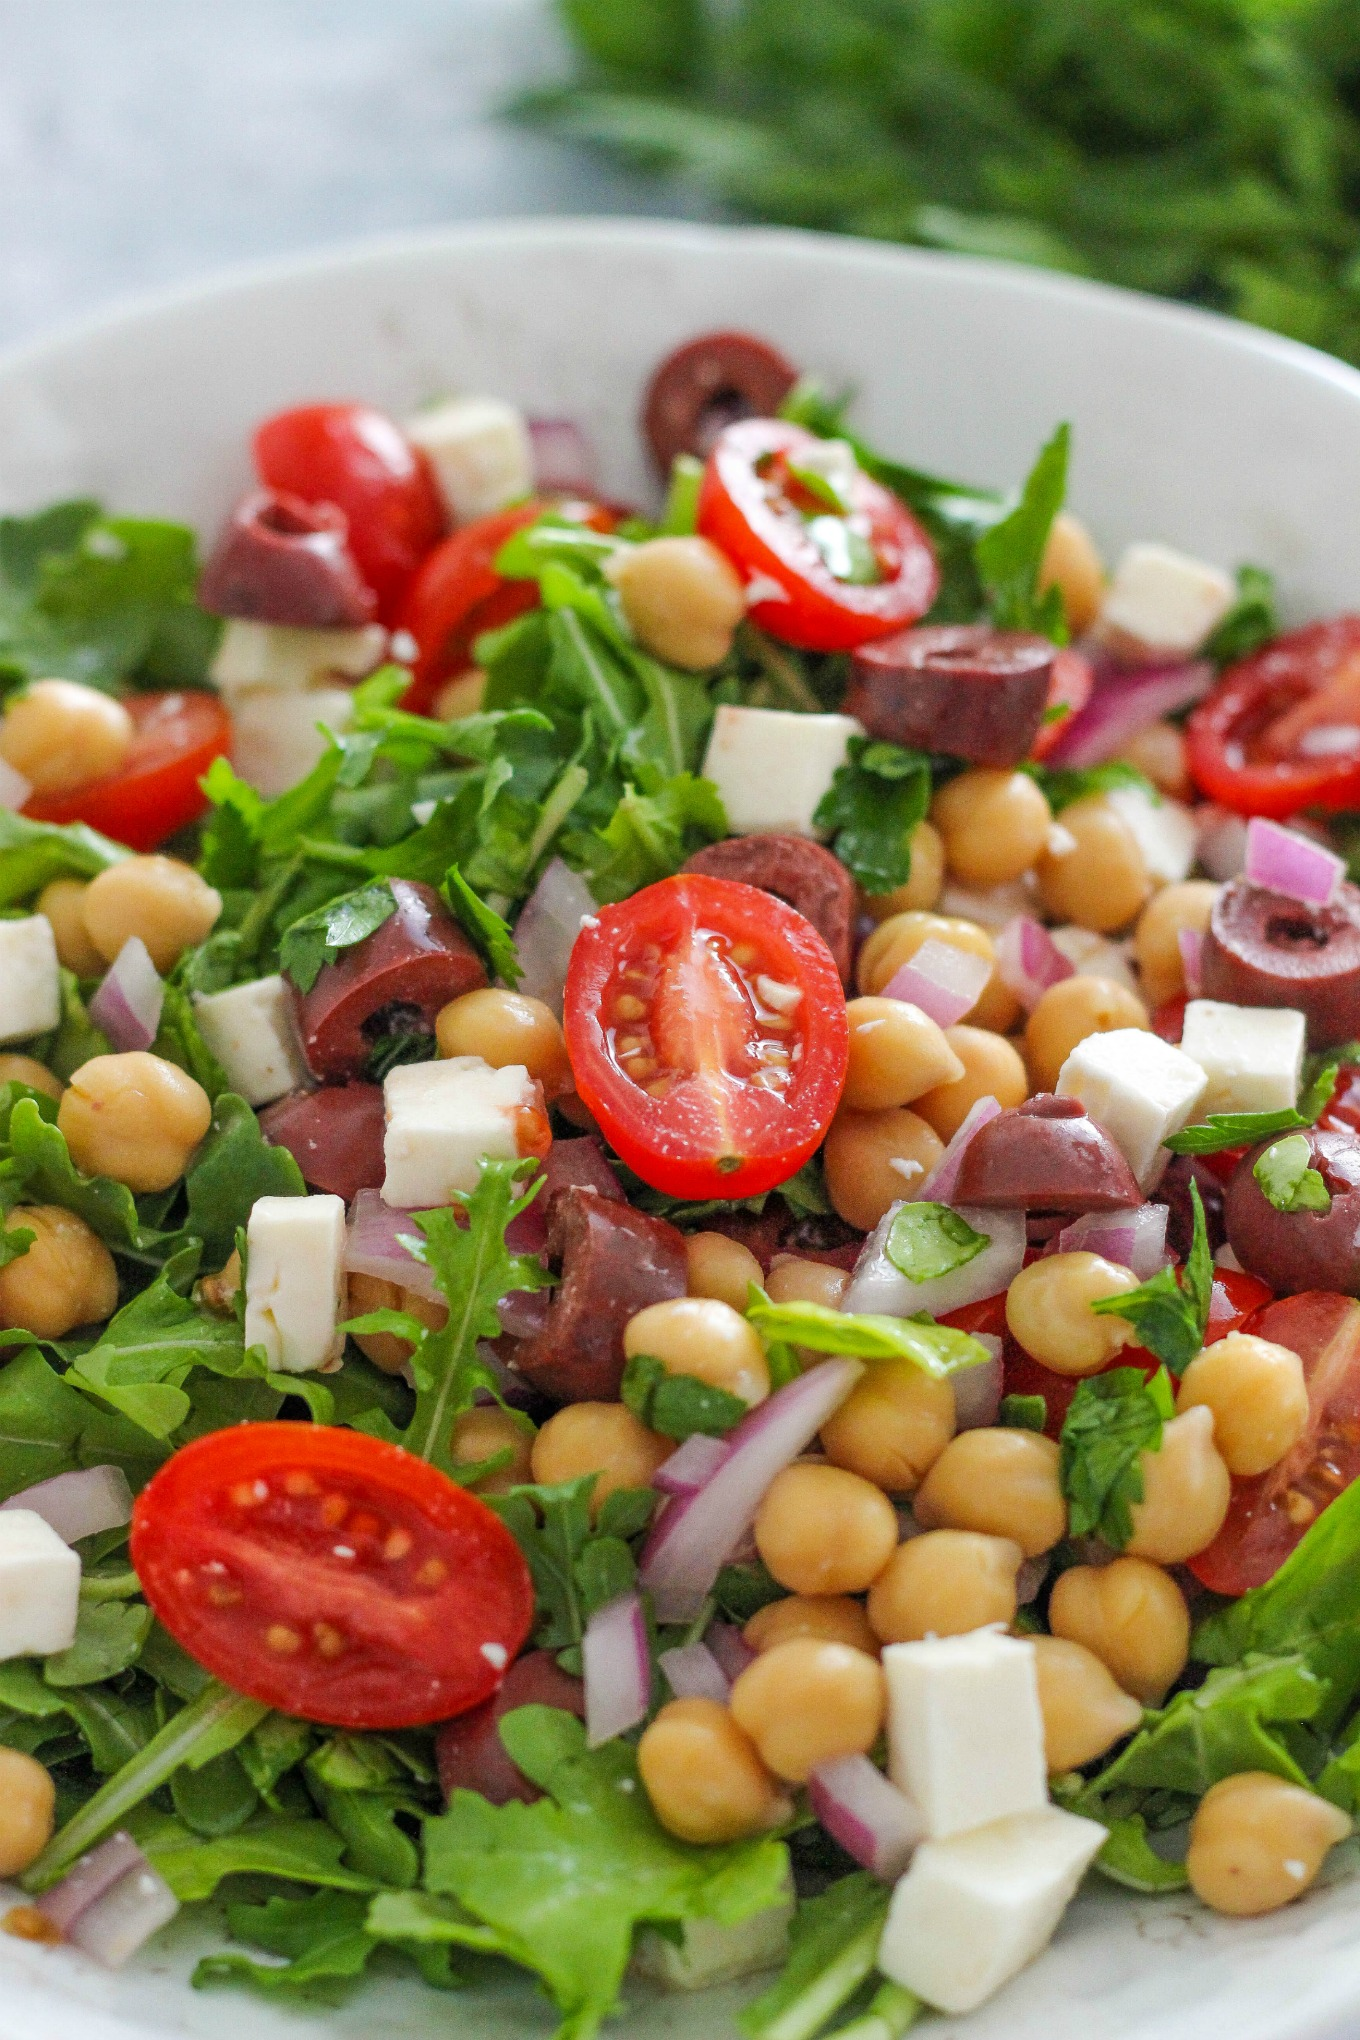 Mediterranean Chickpea and Arugula Salad is a crisp and easy to make salad full of fresh flavors. This salad is perfect for summer!